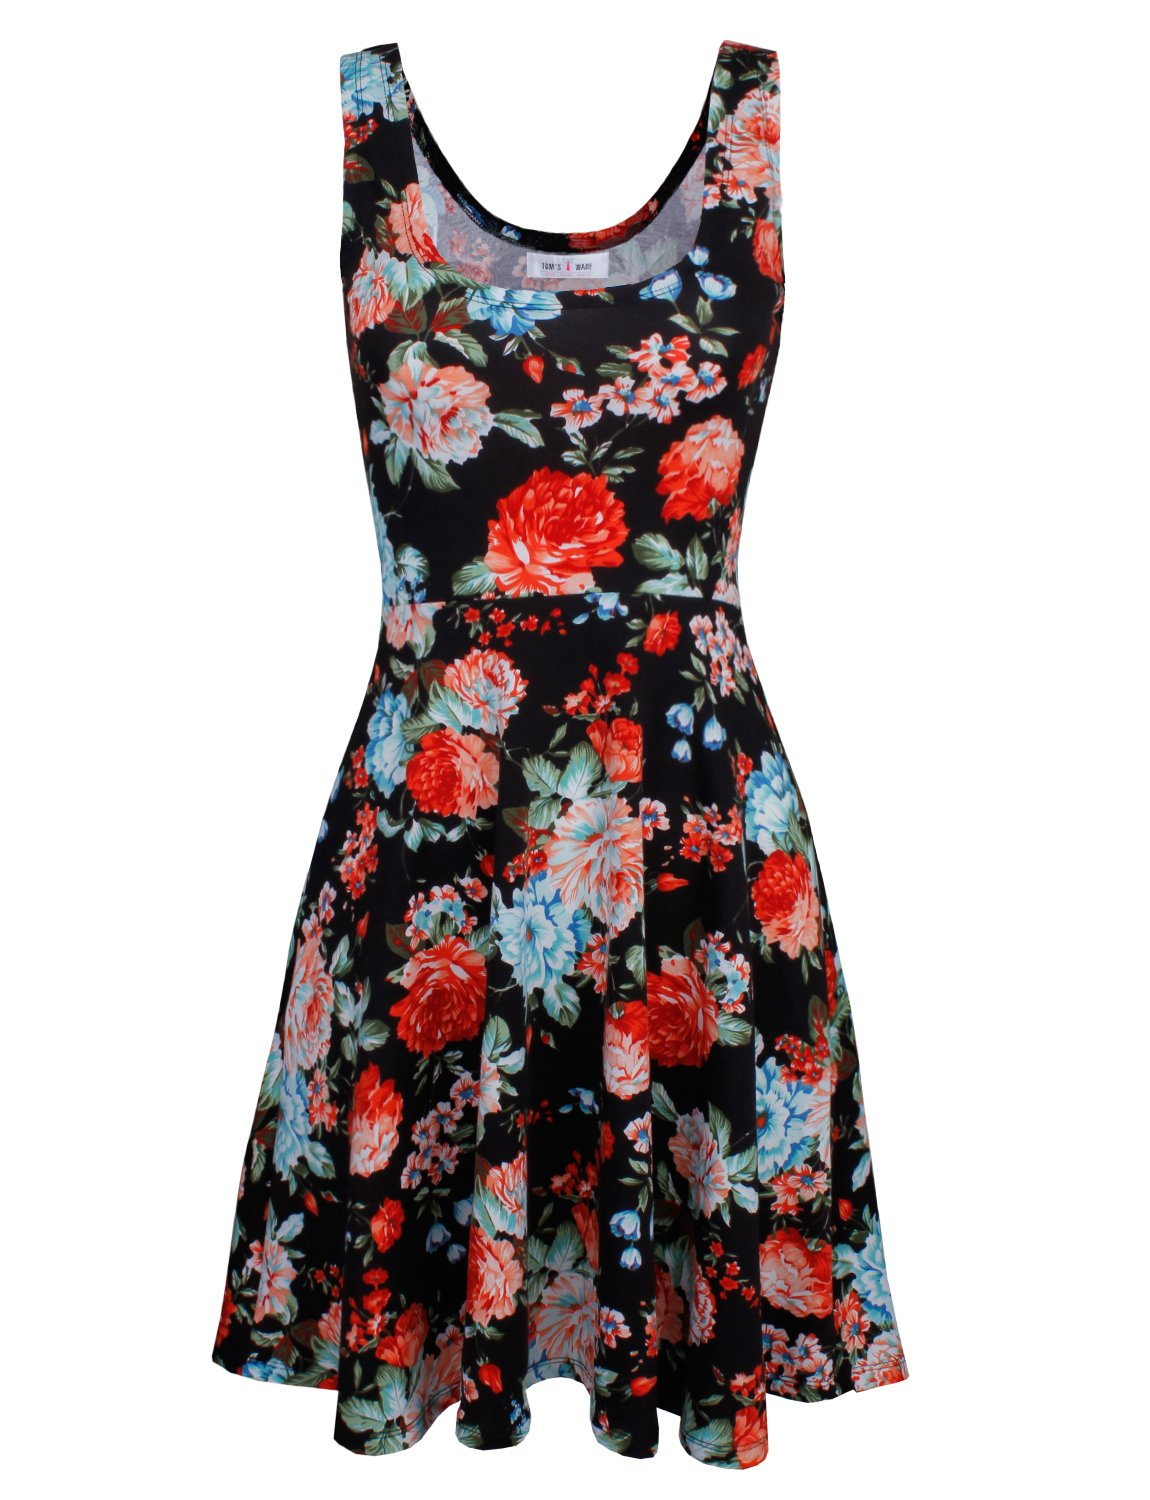 Tom's Ware Womens Casual Fit and Flare Floral Sleeveless Dress TWCWD054-BLACK-US M